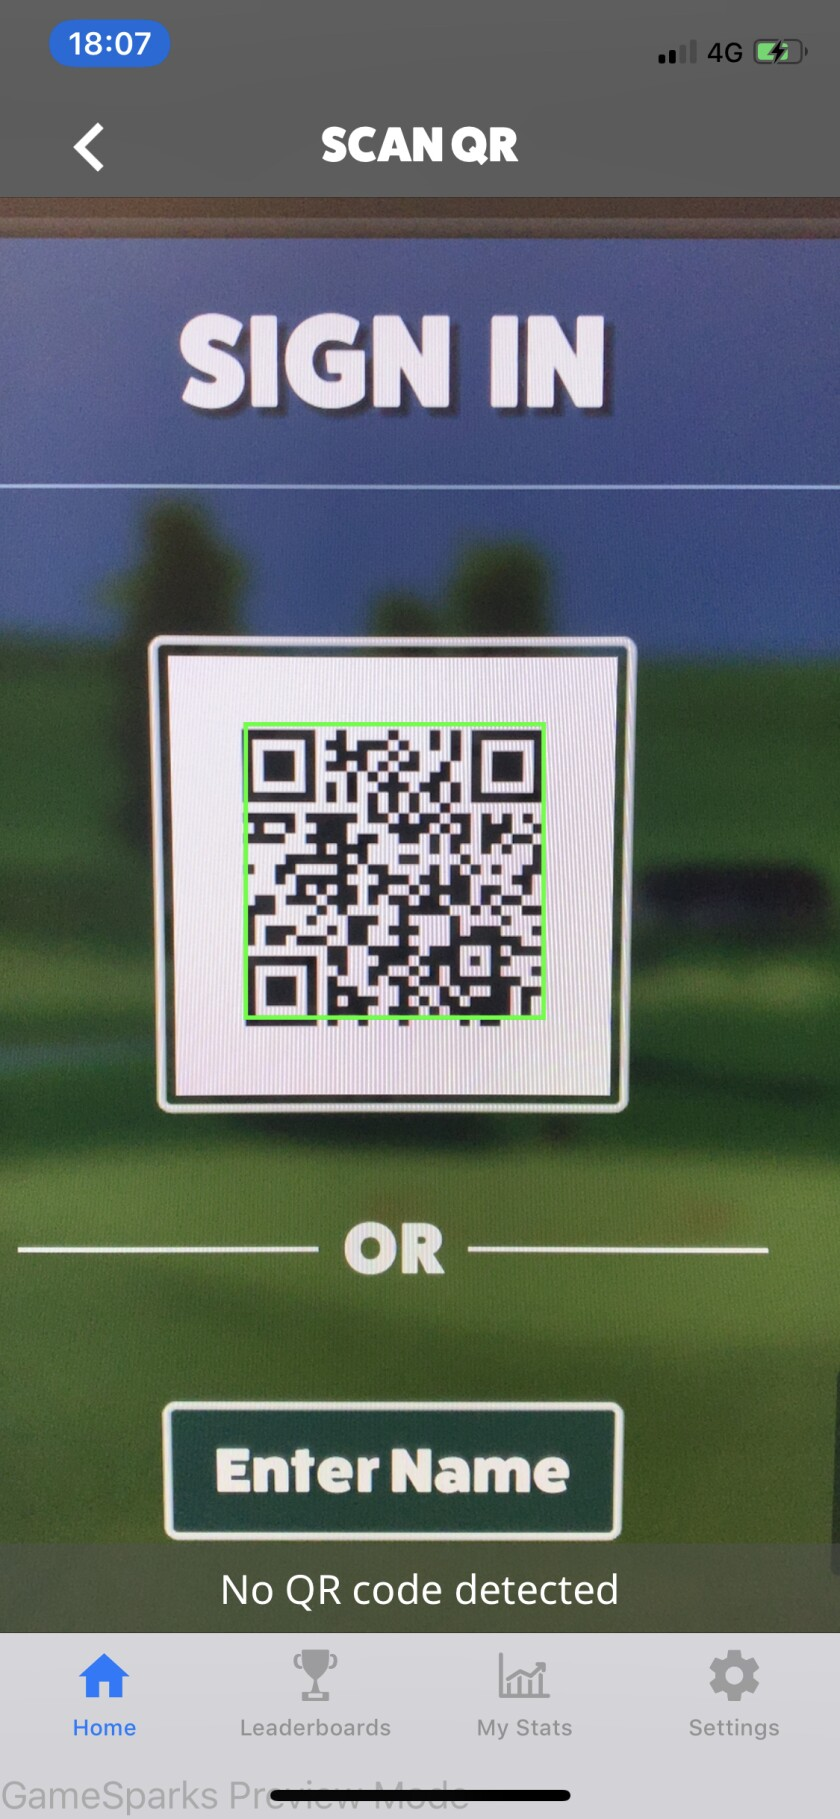 Awesome Golf App scan code